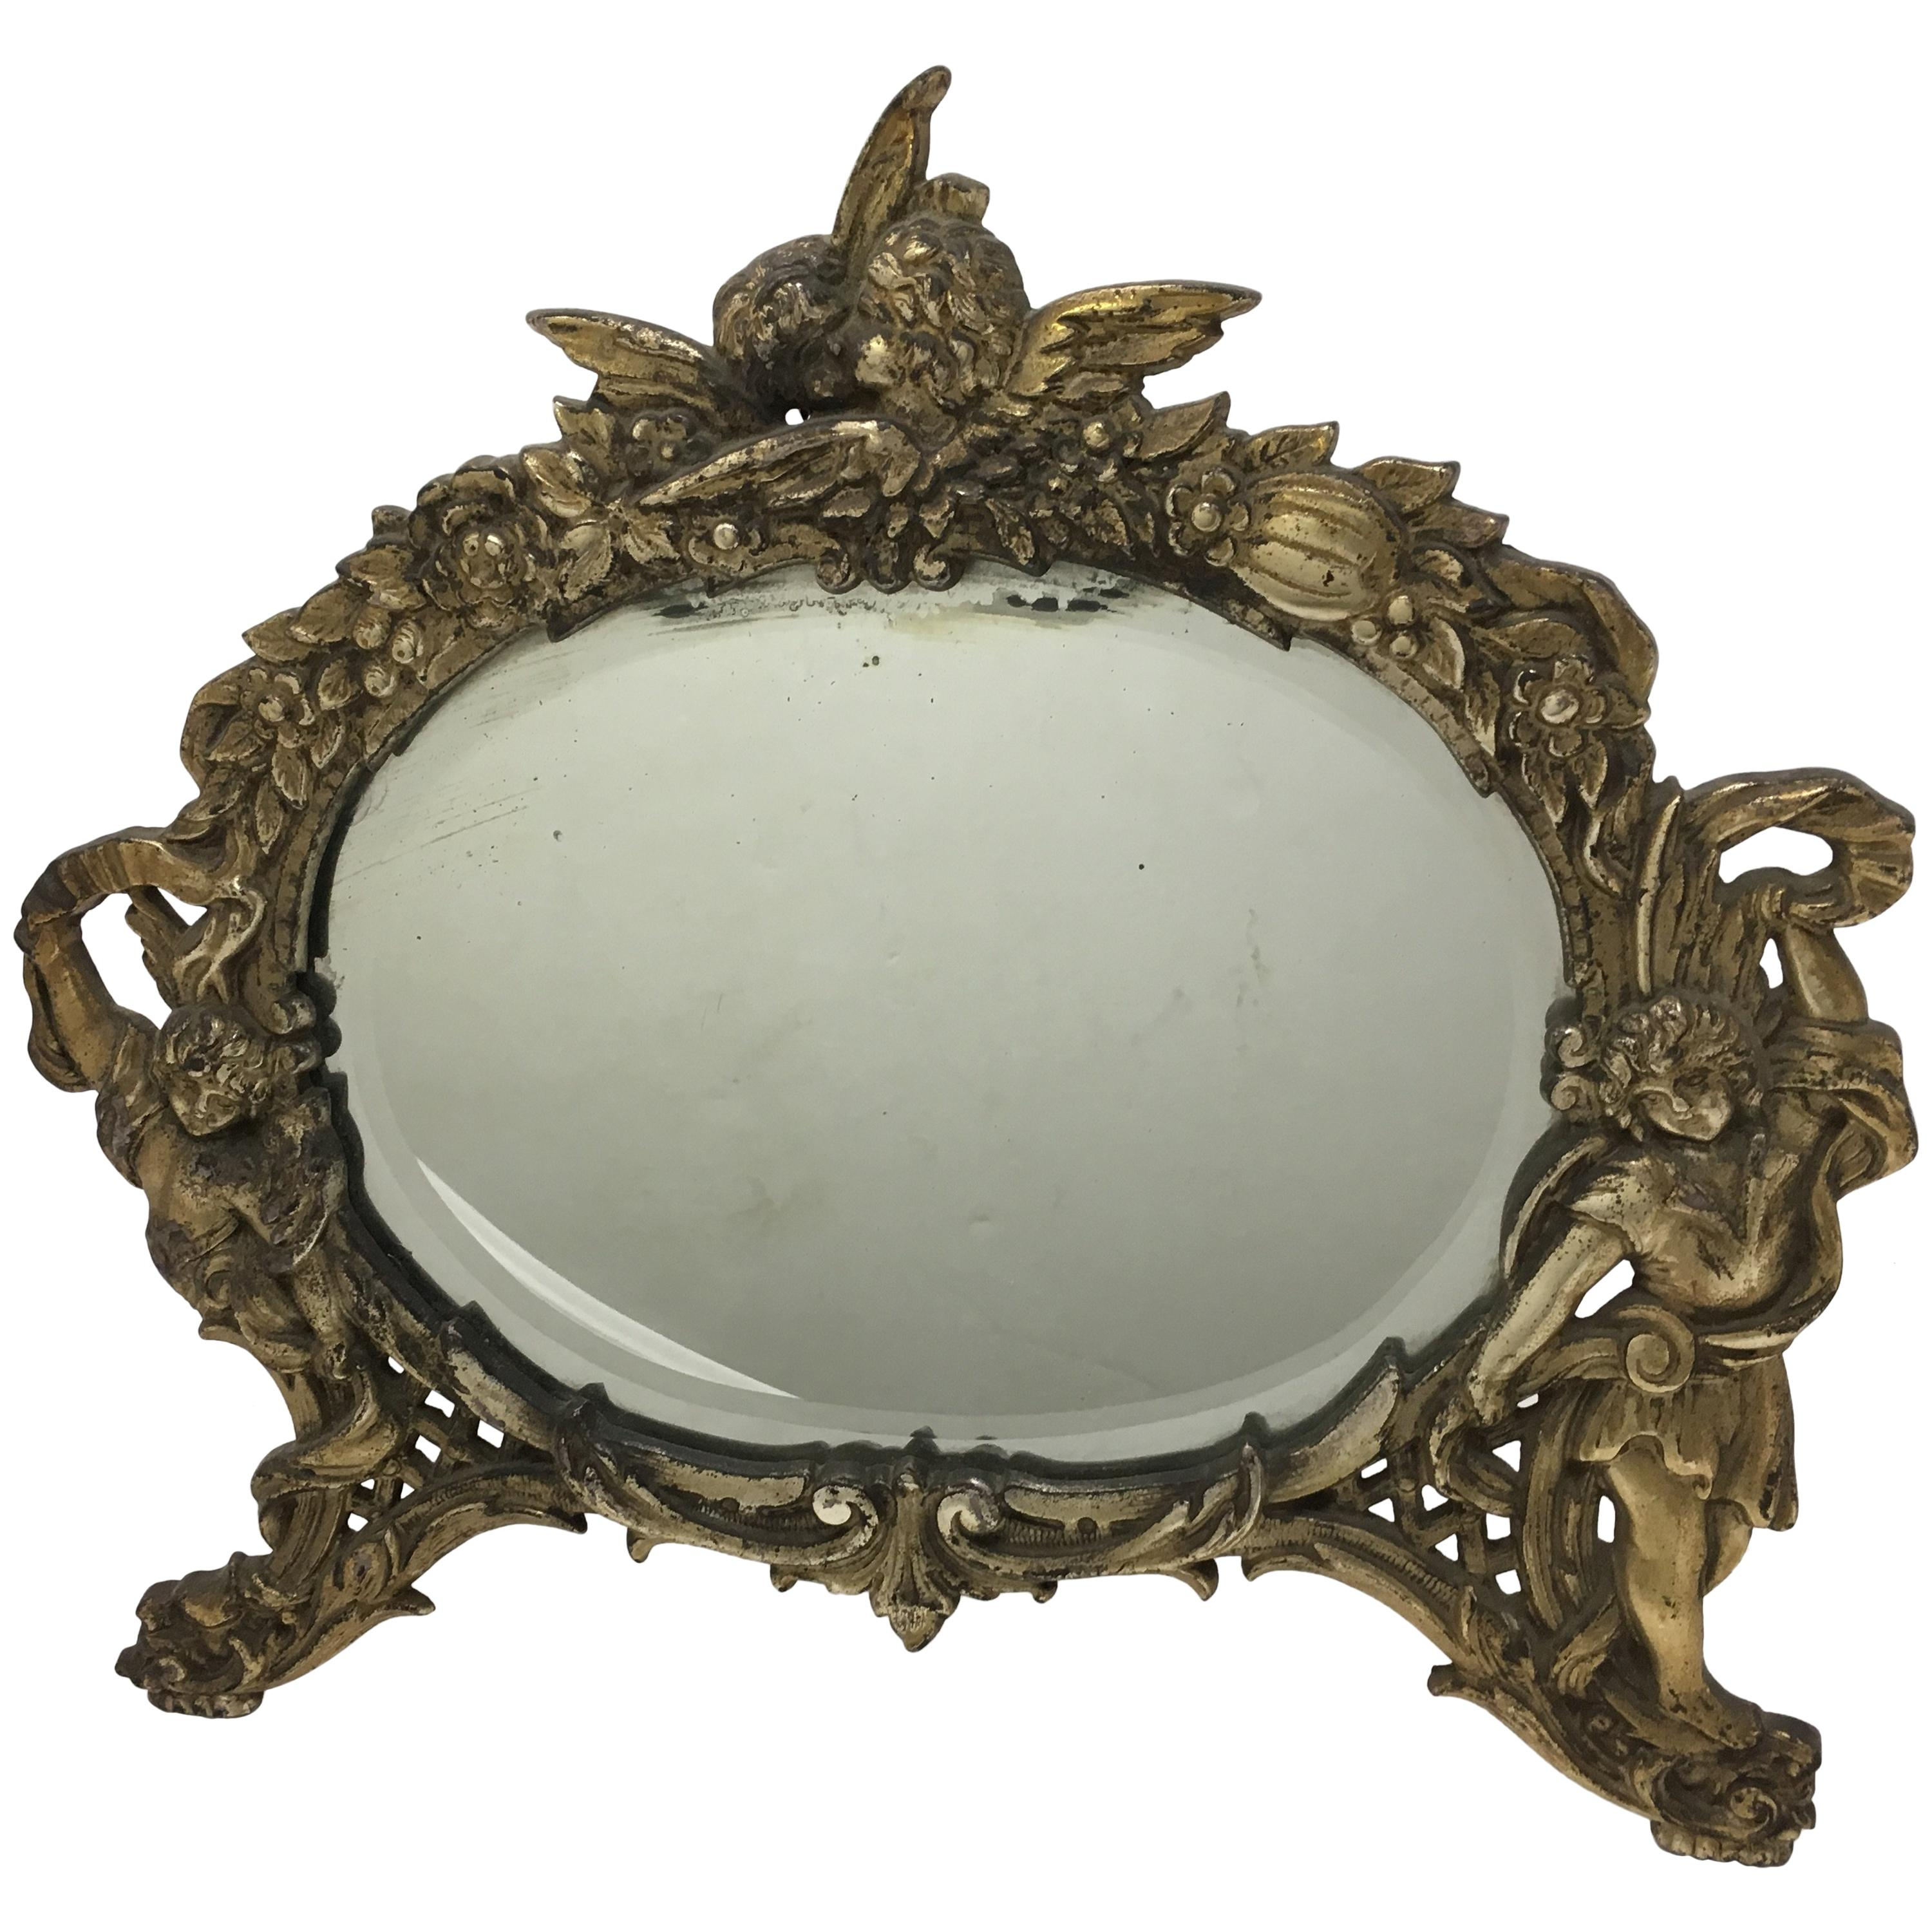 National Bronze and Iron Works Gilded Iron Mirror with Putti